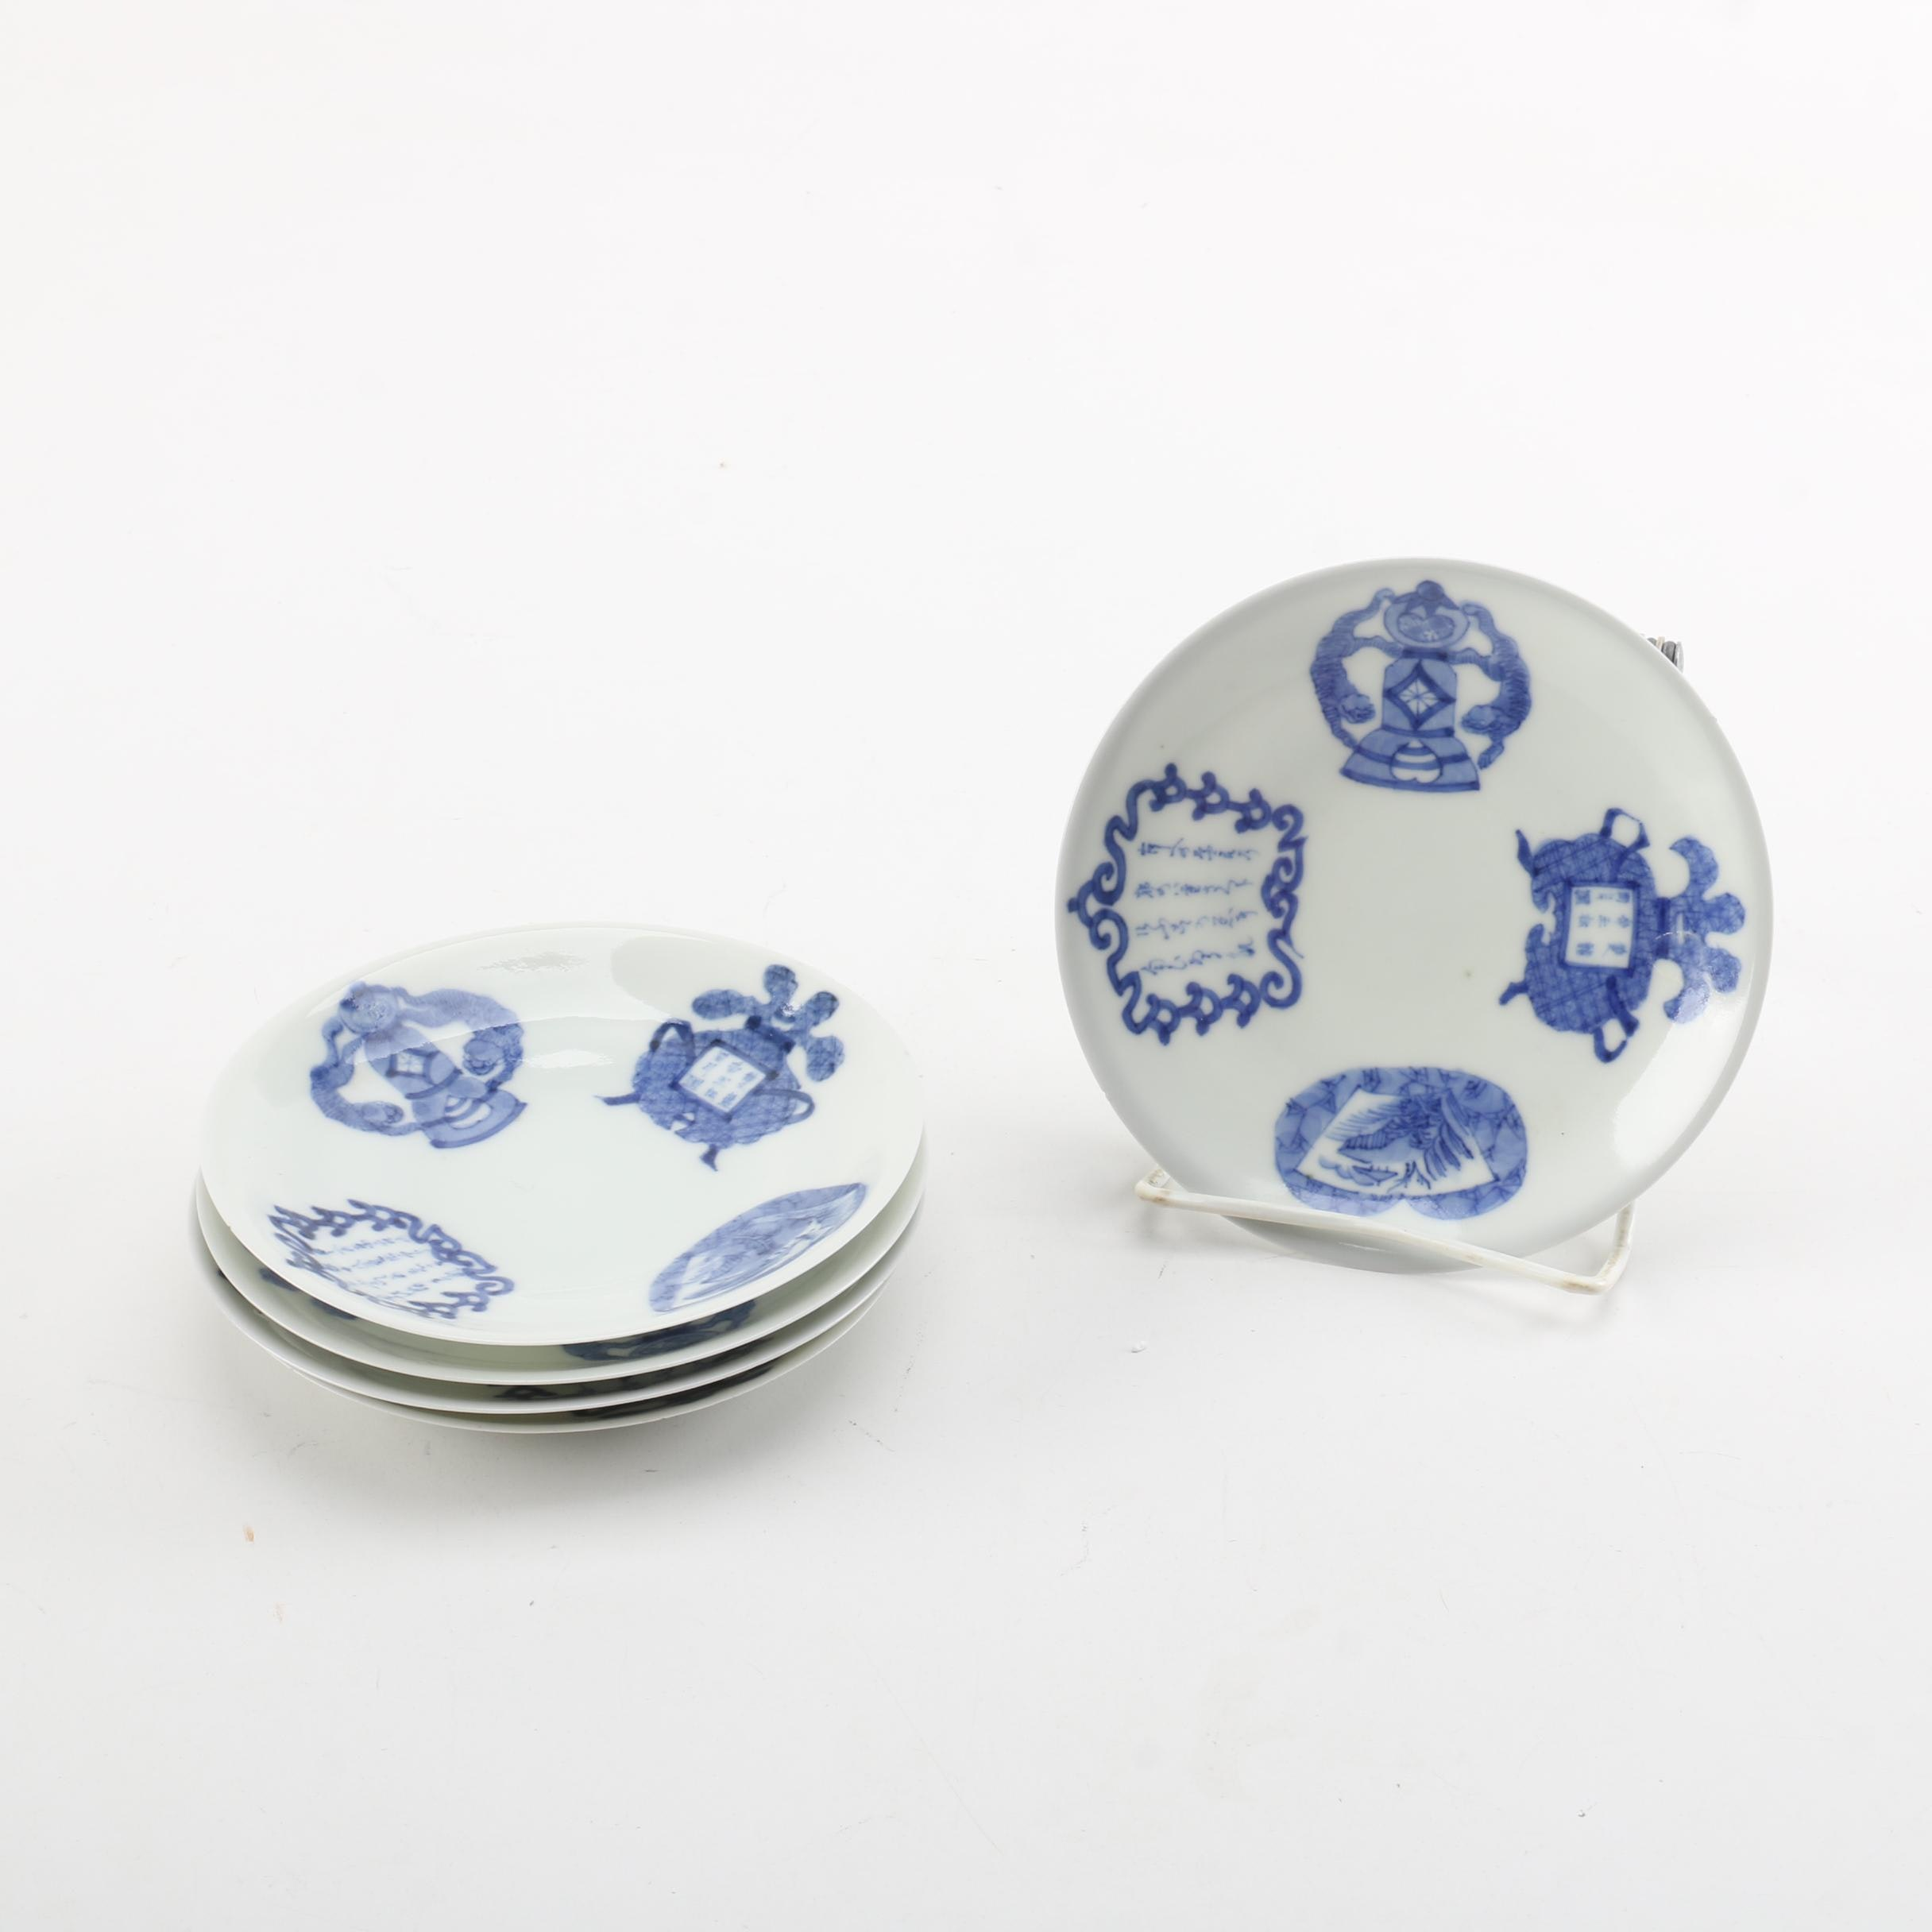 Japanese Late Meiji Period Blue and White Plates